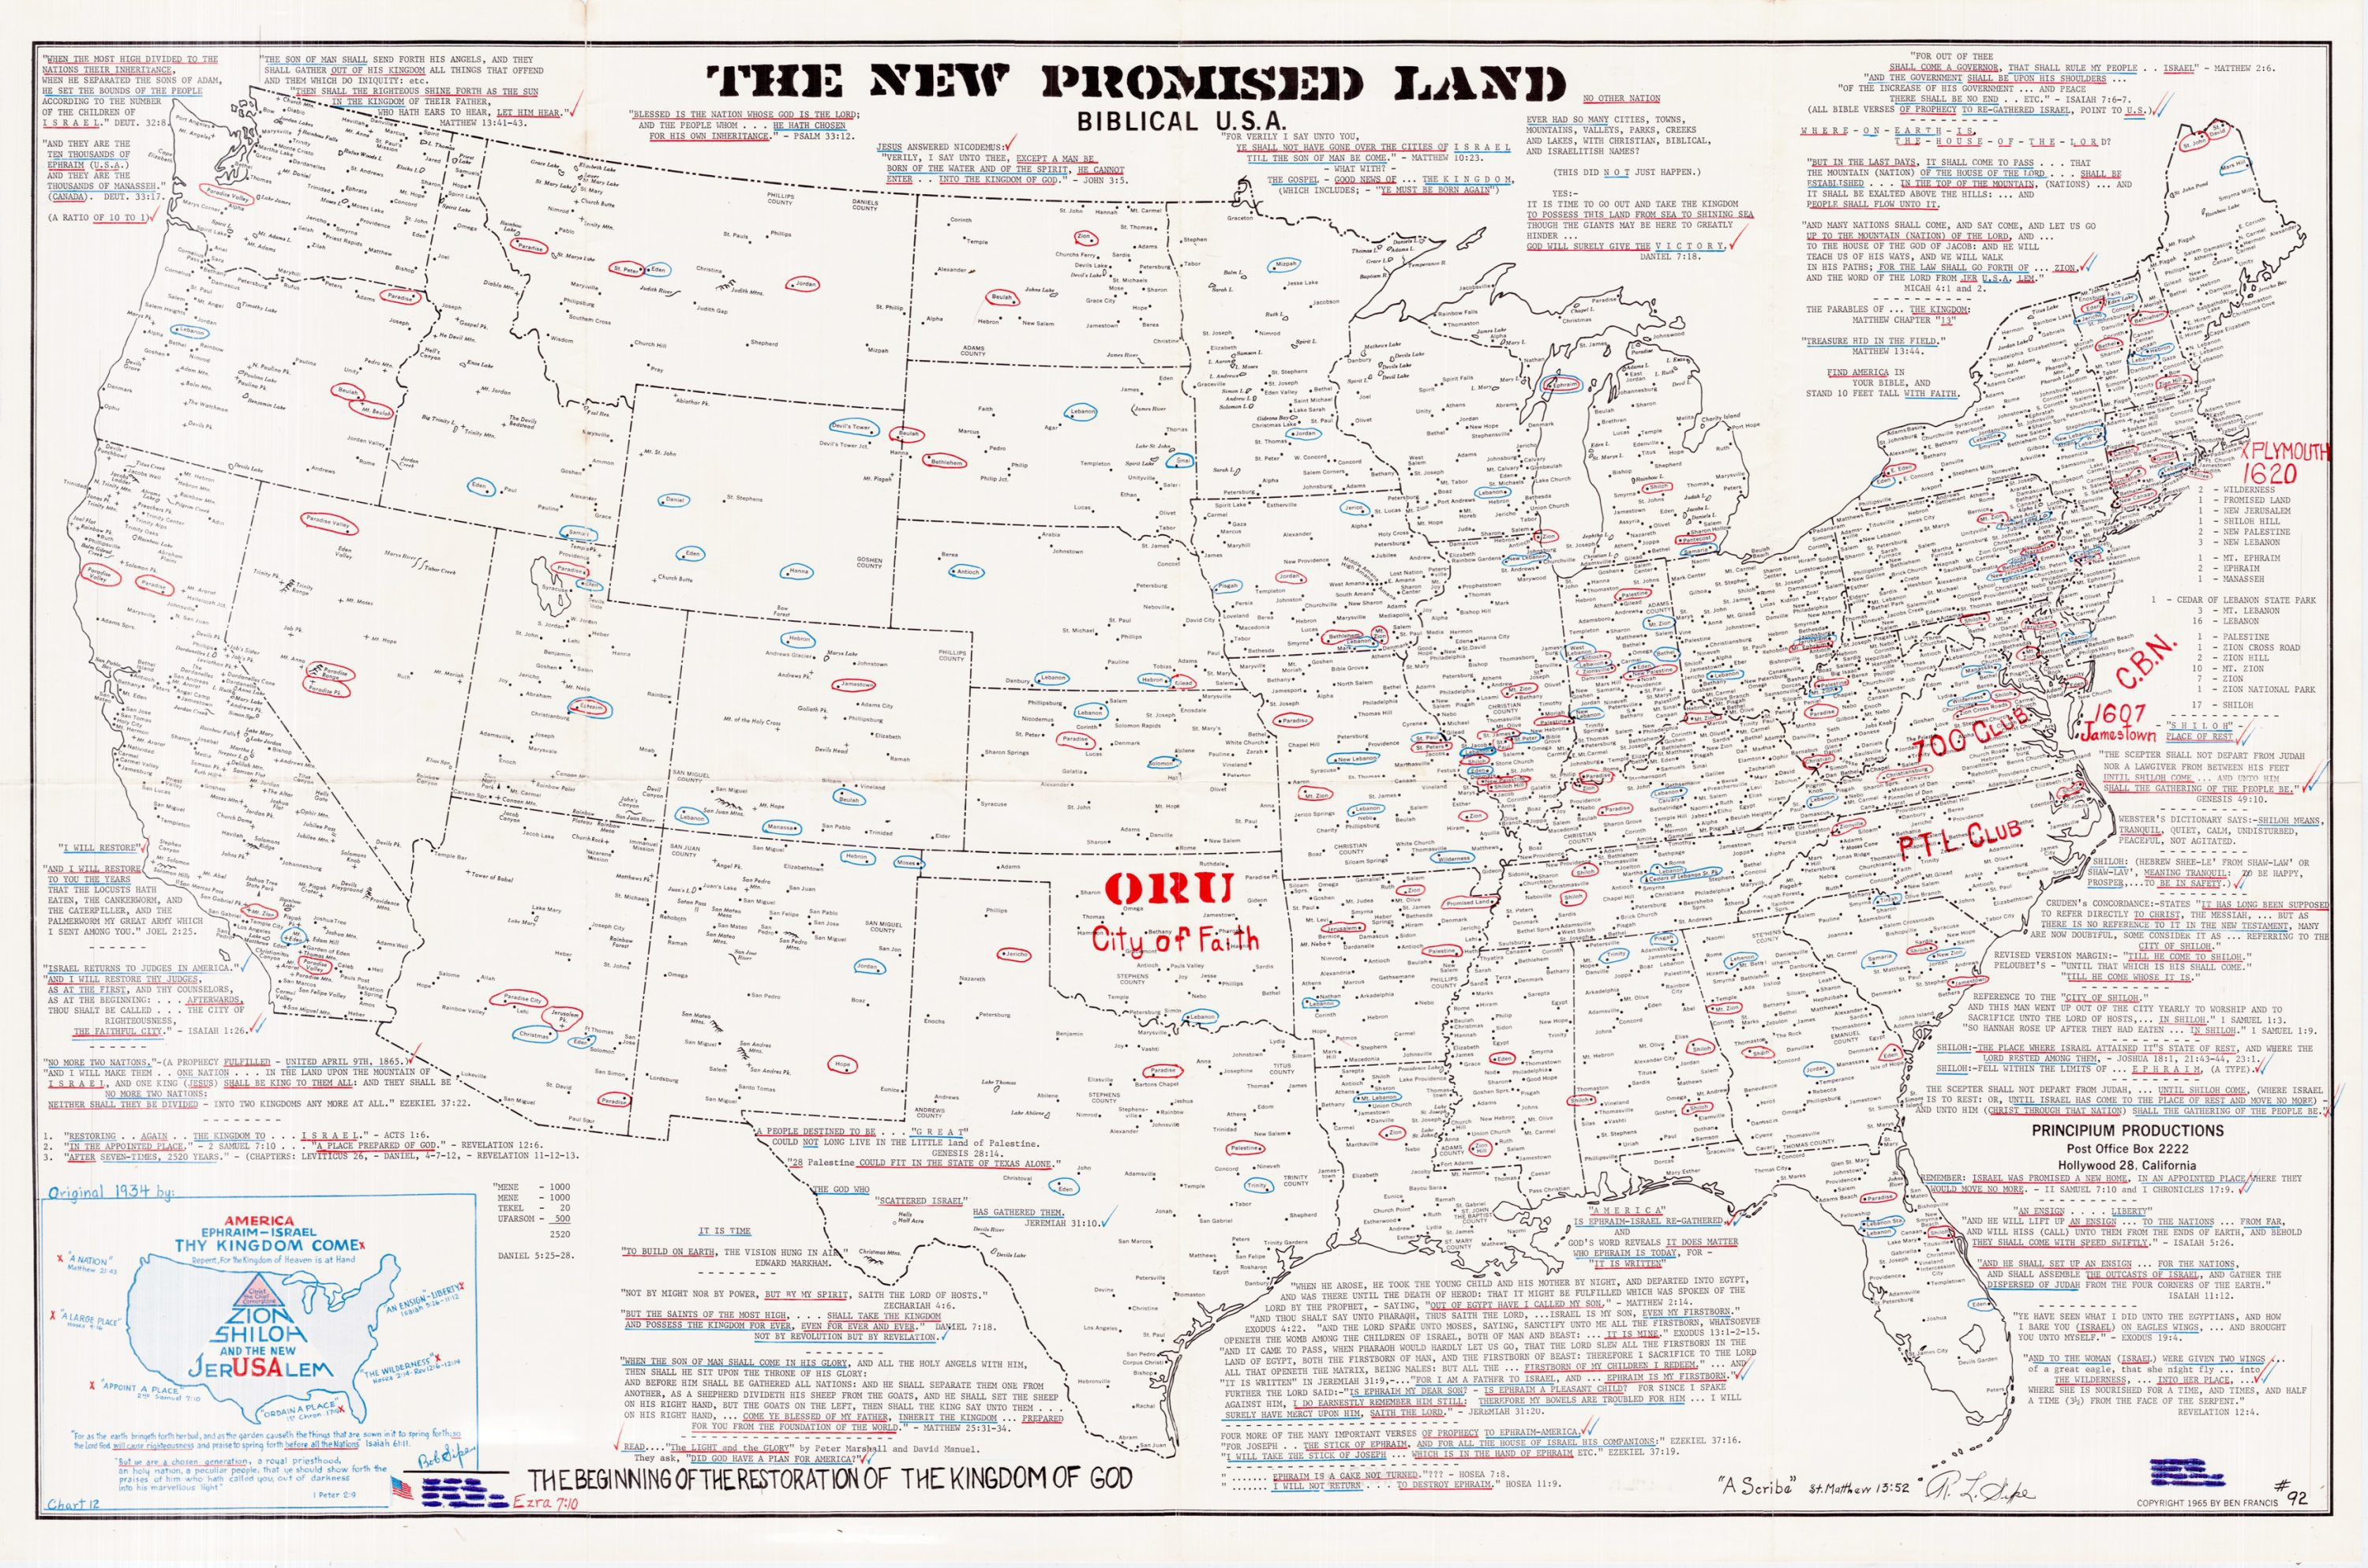 Evangelical map of the United States as The New Promised ...